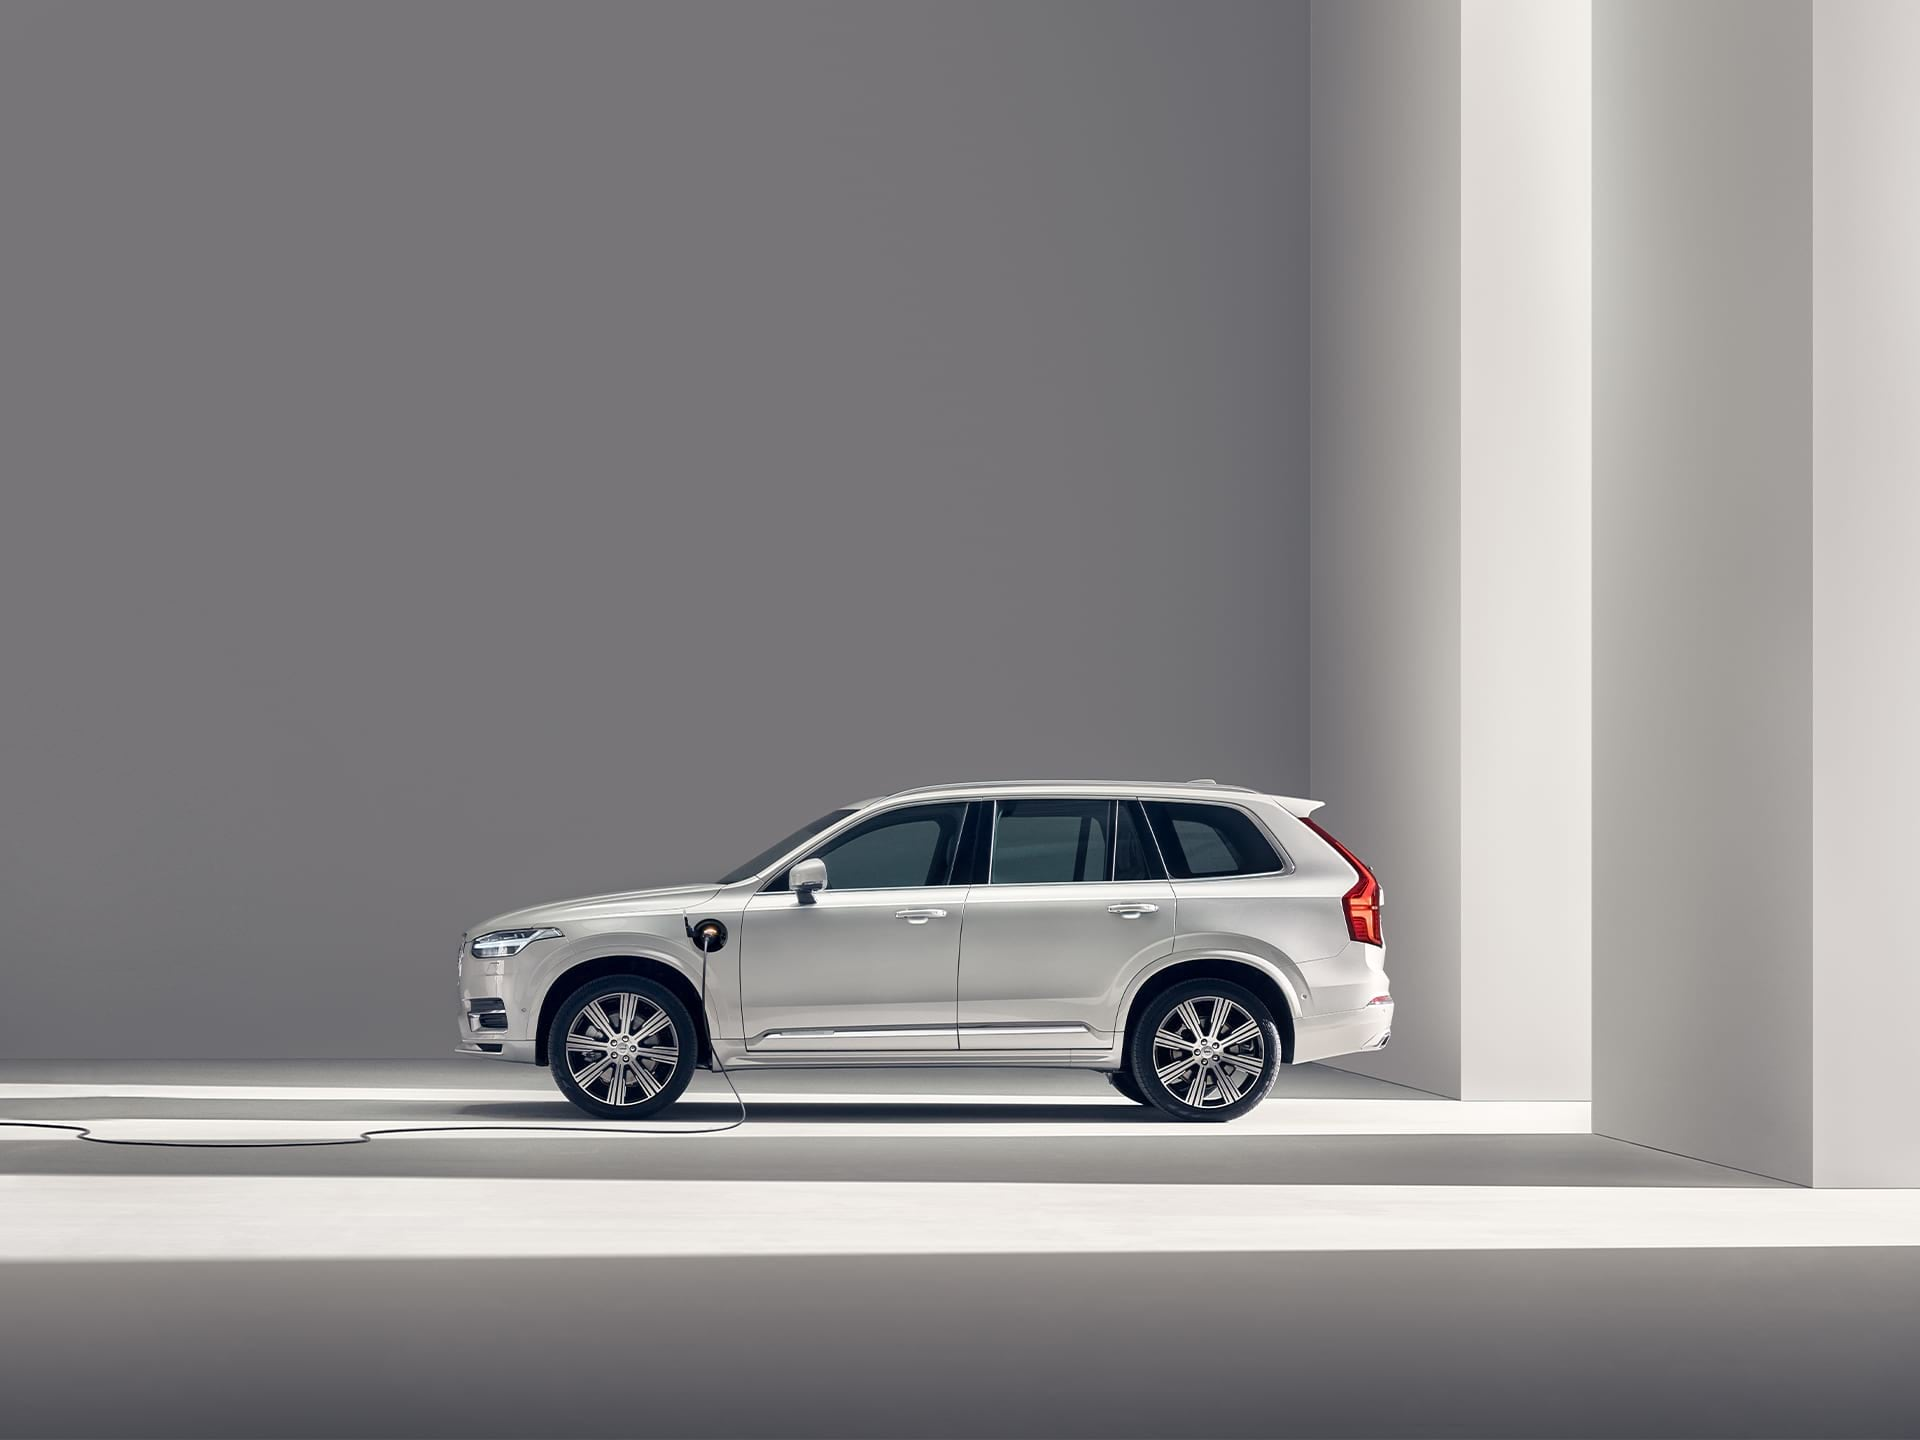 A grey Volvo XC40 full electric SUV being charged in a pink background